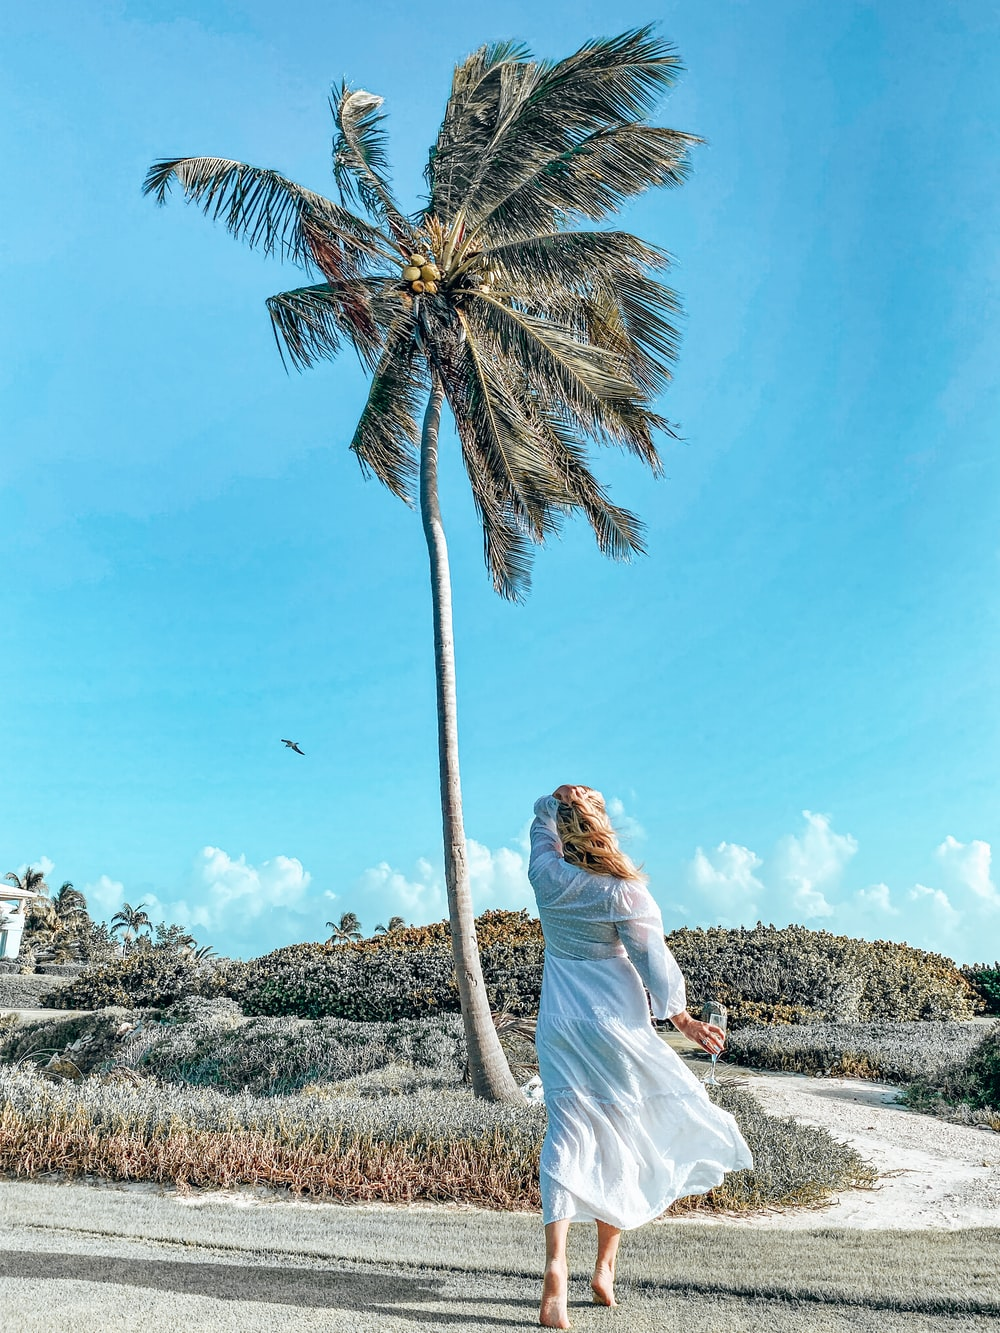 woman in white dress standing near palm tree during daytime